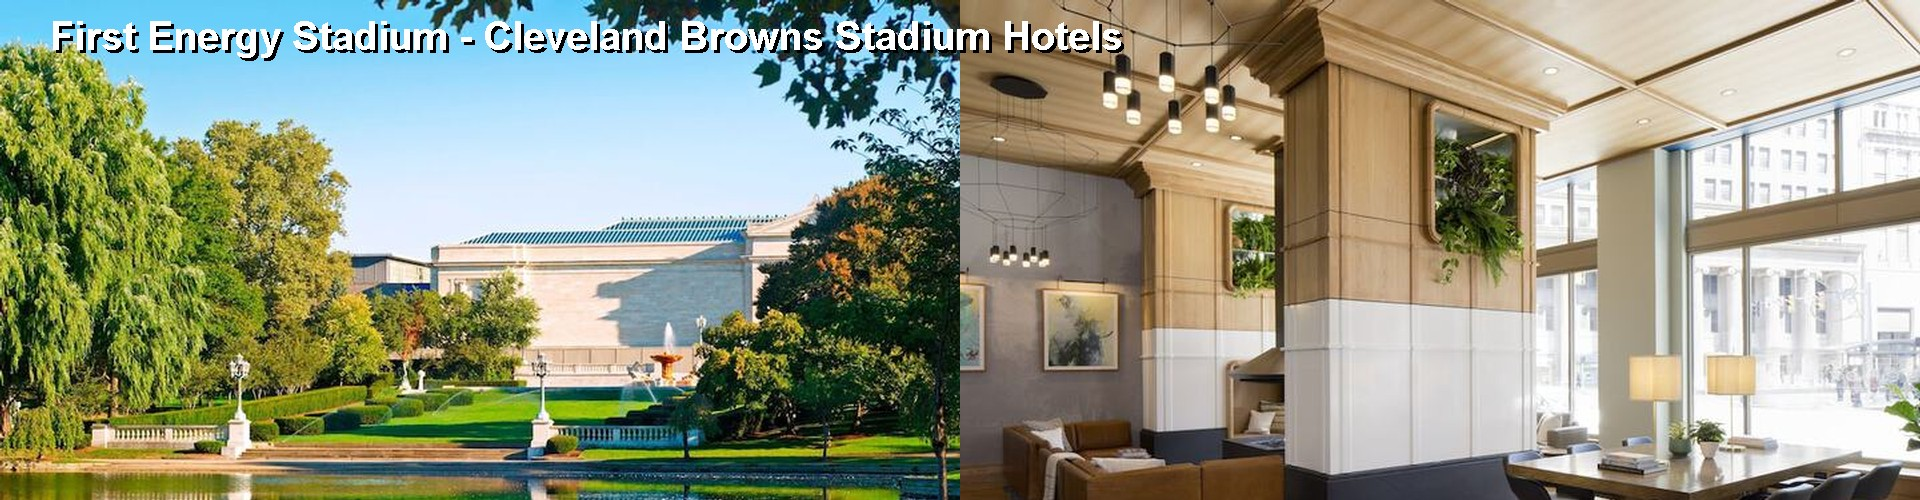 5 Best Hotels near Cleveland Browns Stadium - Cleveland Browns